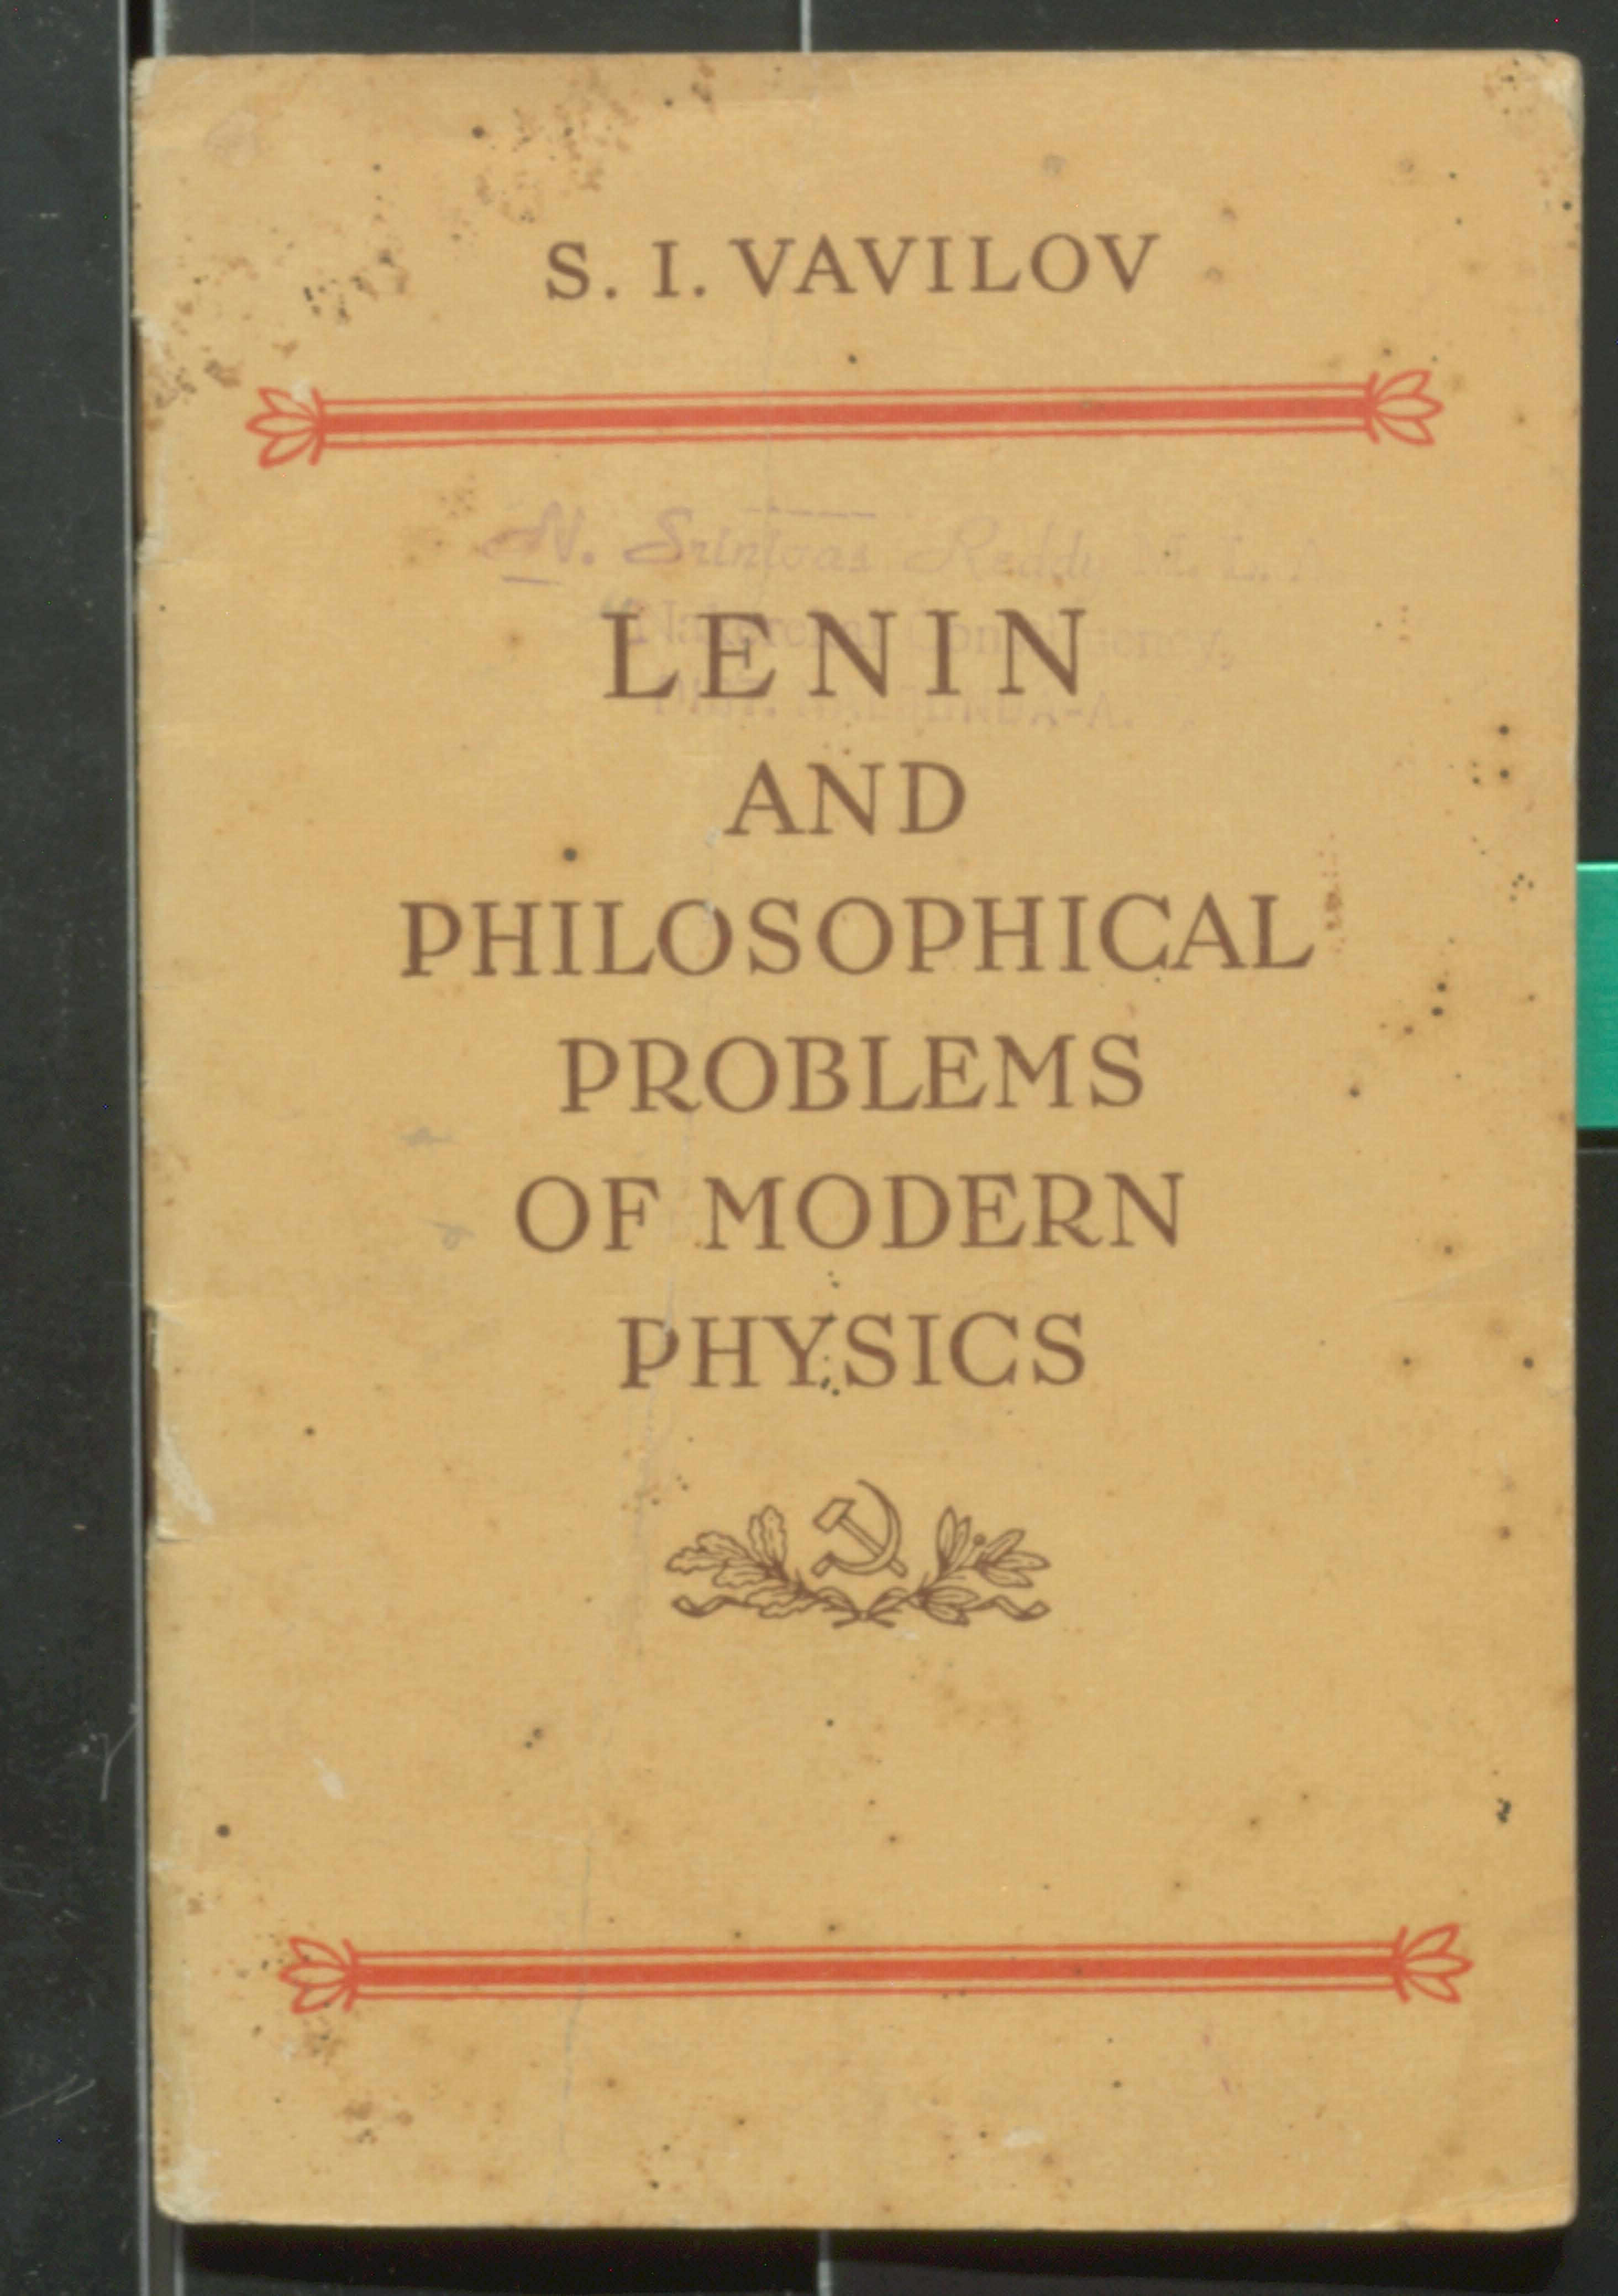 Lenin And Philosophical Problems of Modern Physics